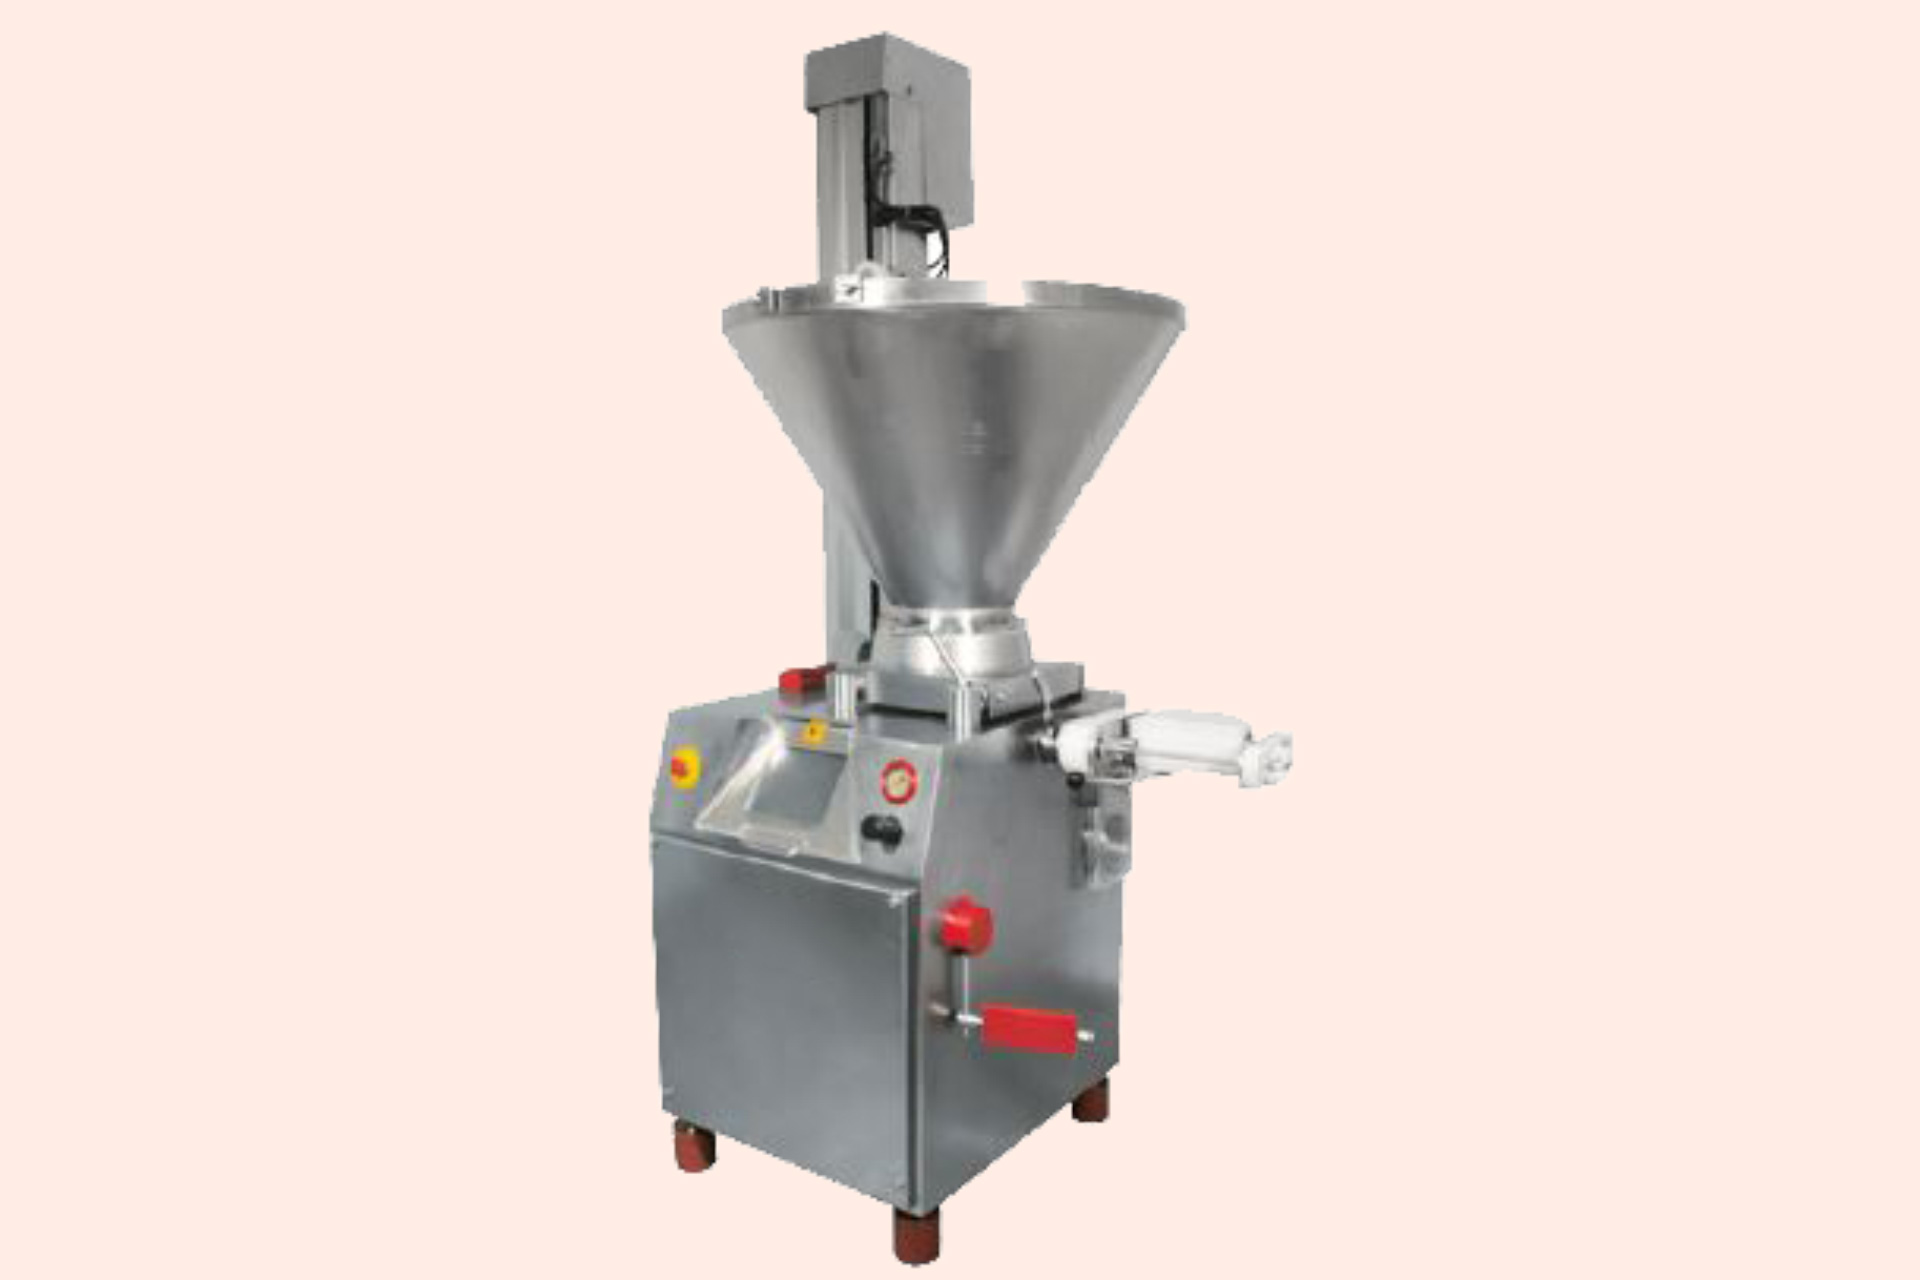 HSF-500 HSF-Series Hydraulic Sausage Filler